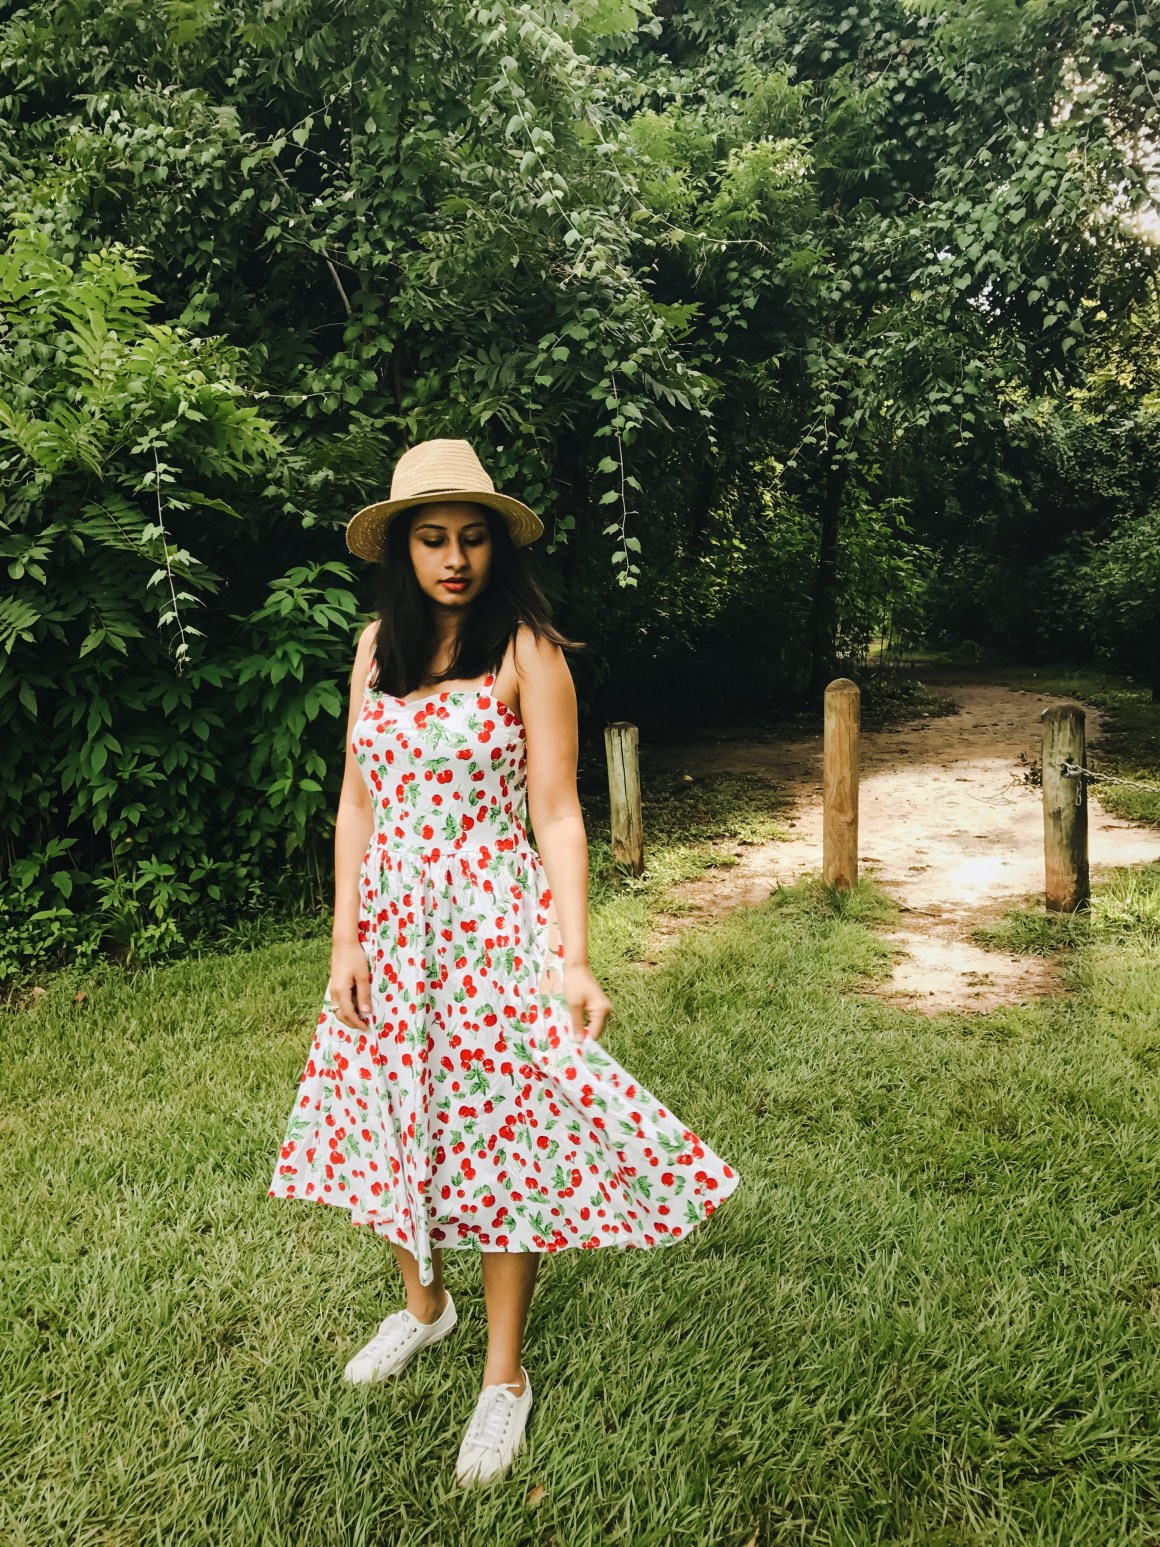 Cherry print dress, Straw hat ASOS, Keds shoes